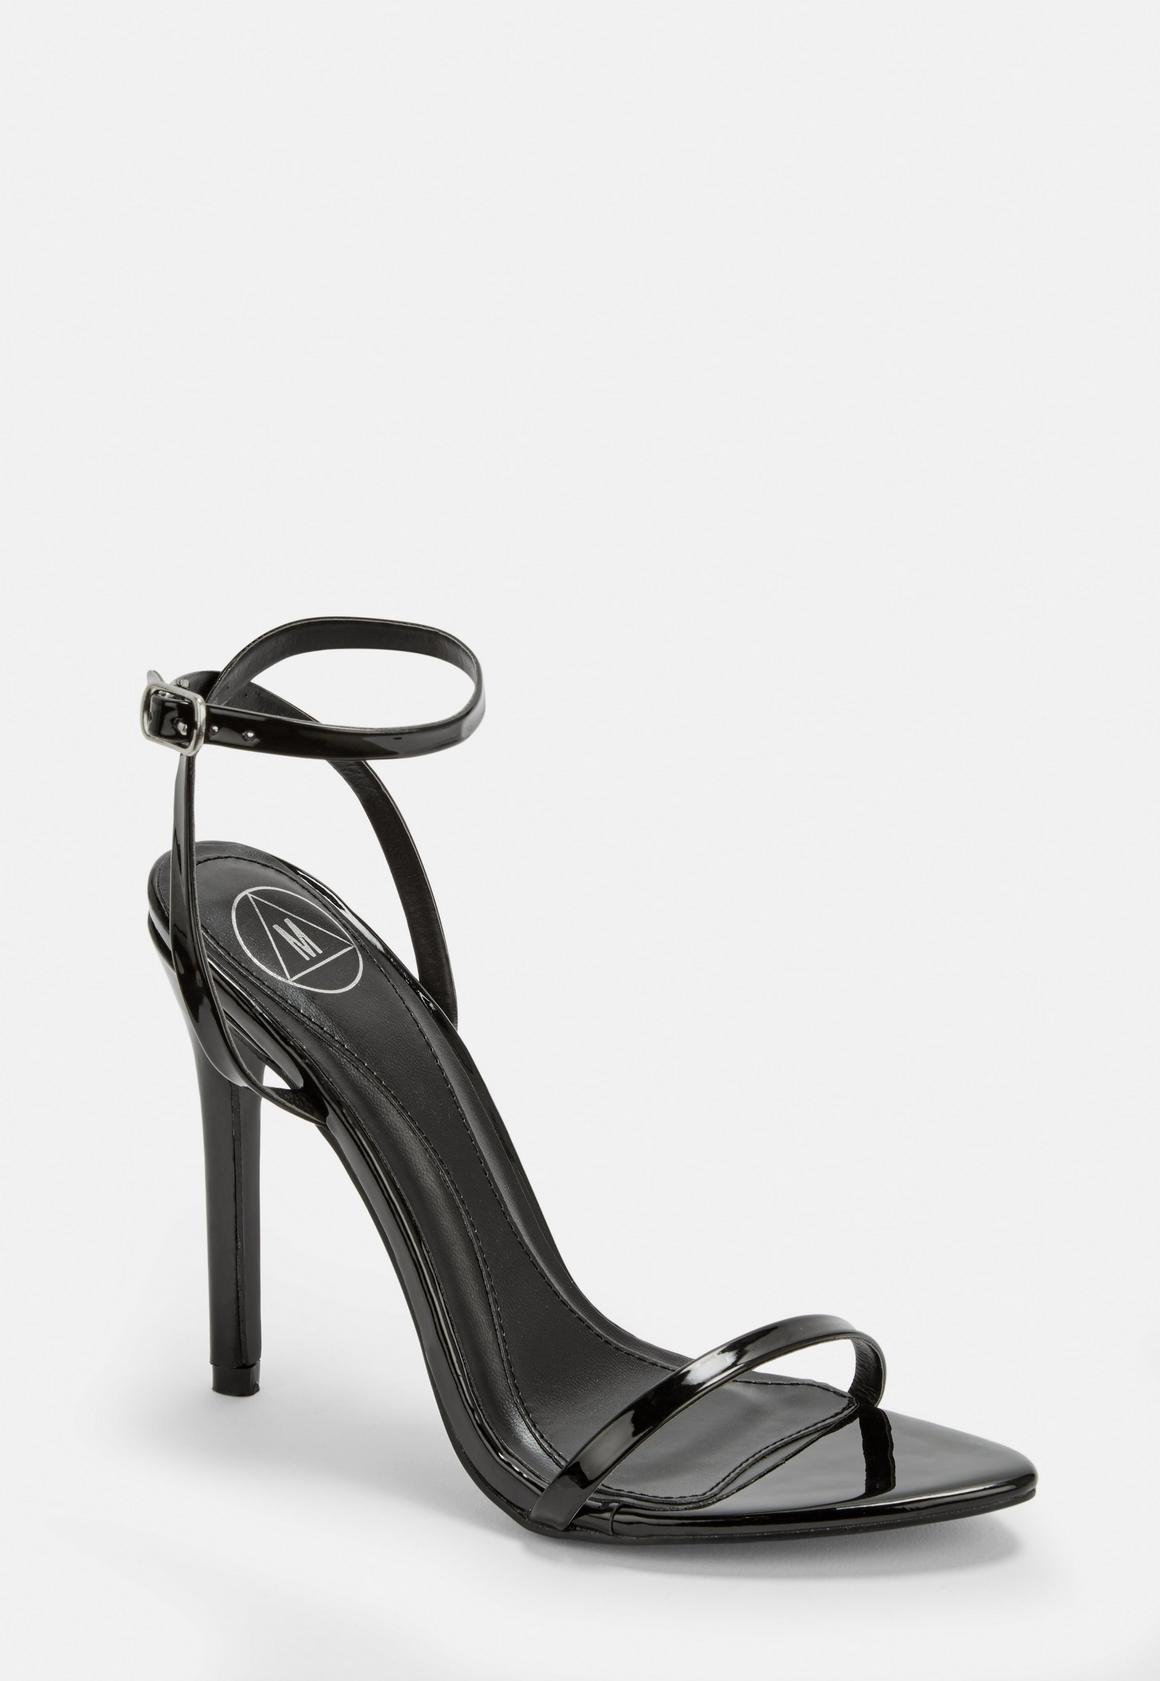 black pointed toe barely there patent